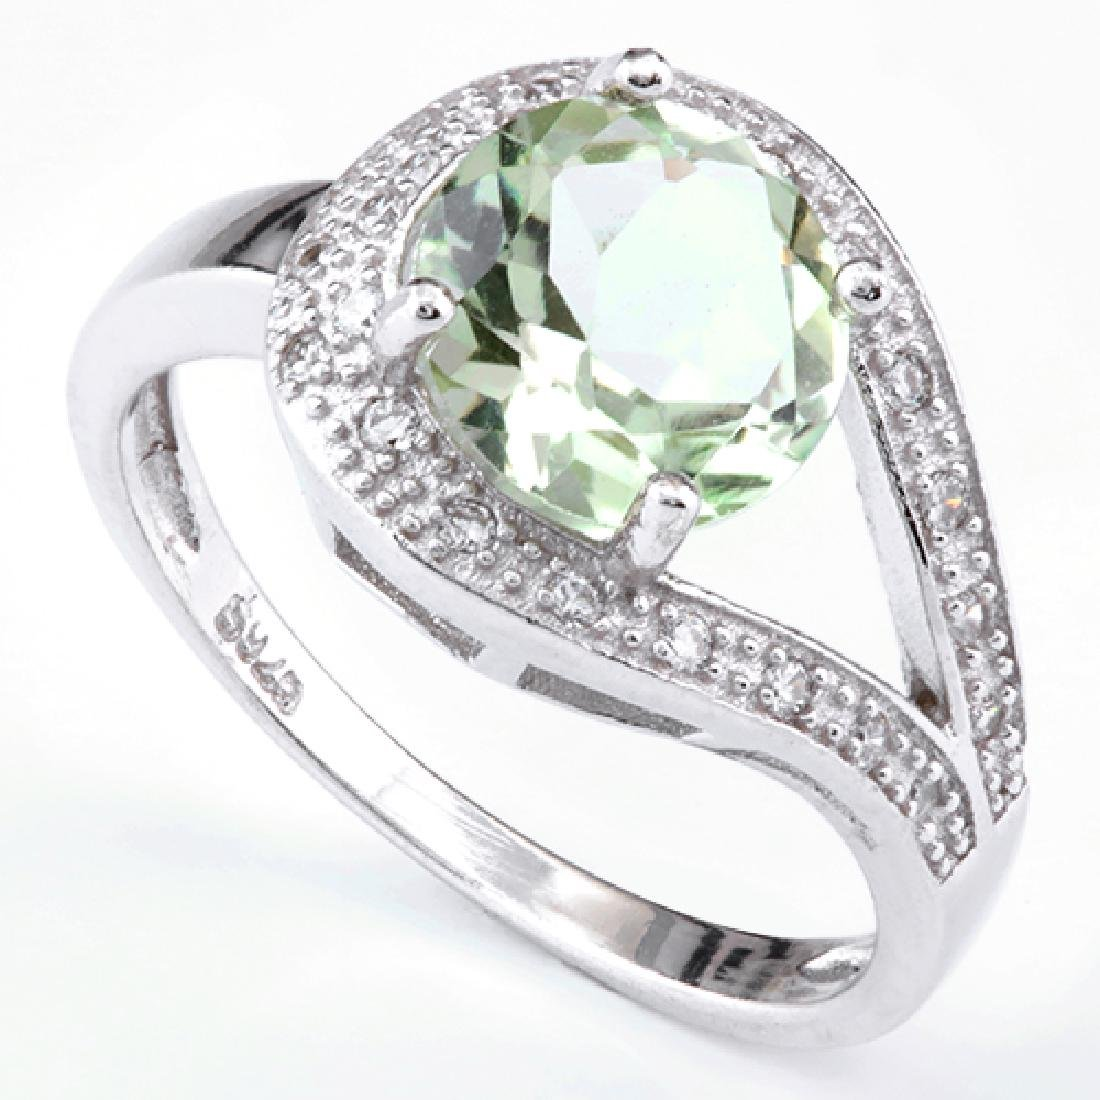 Green Amethyst Ring with White Sapphire in Sterling